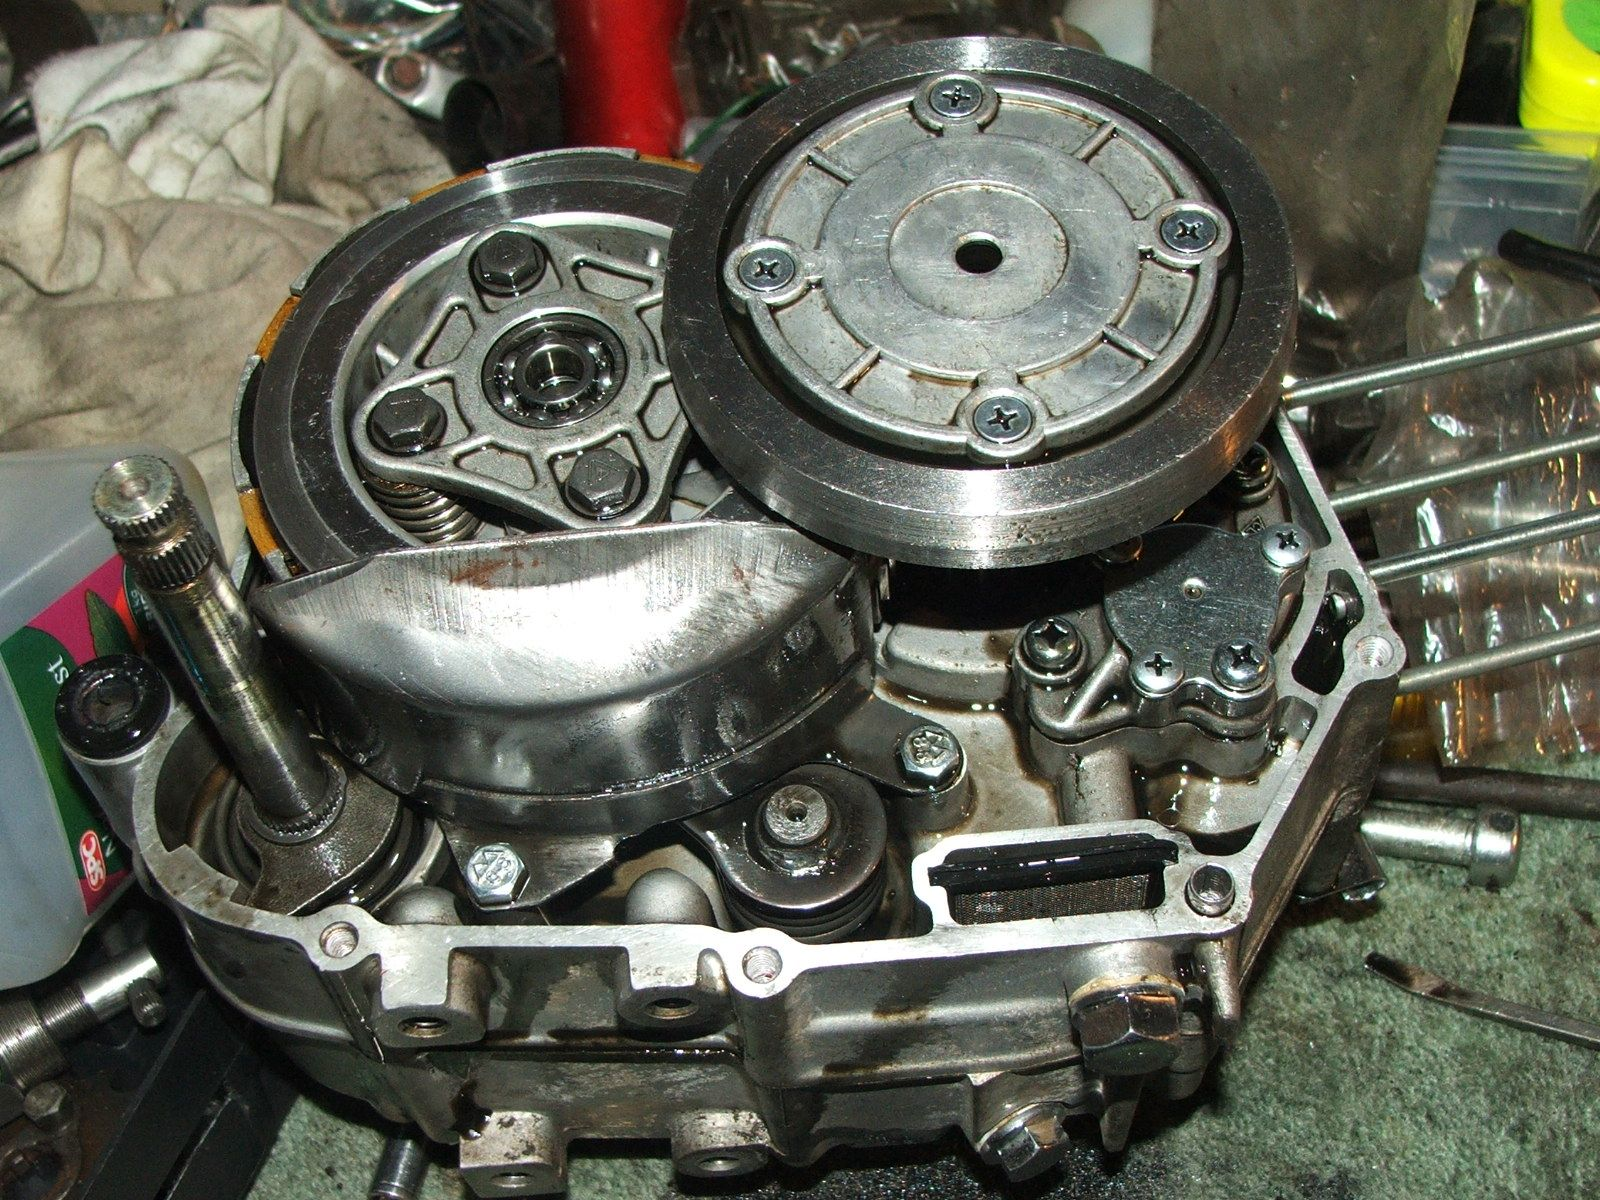 How to repair the clutch of wave 100 honda youtube.